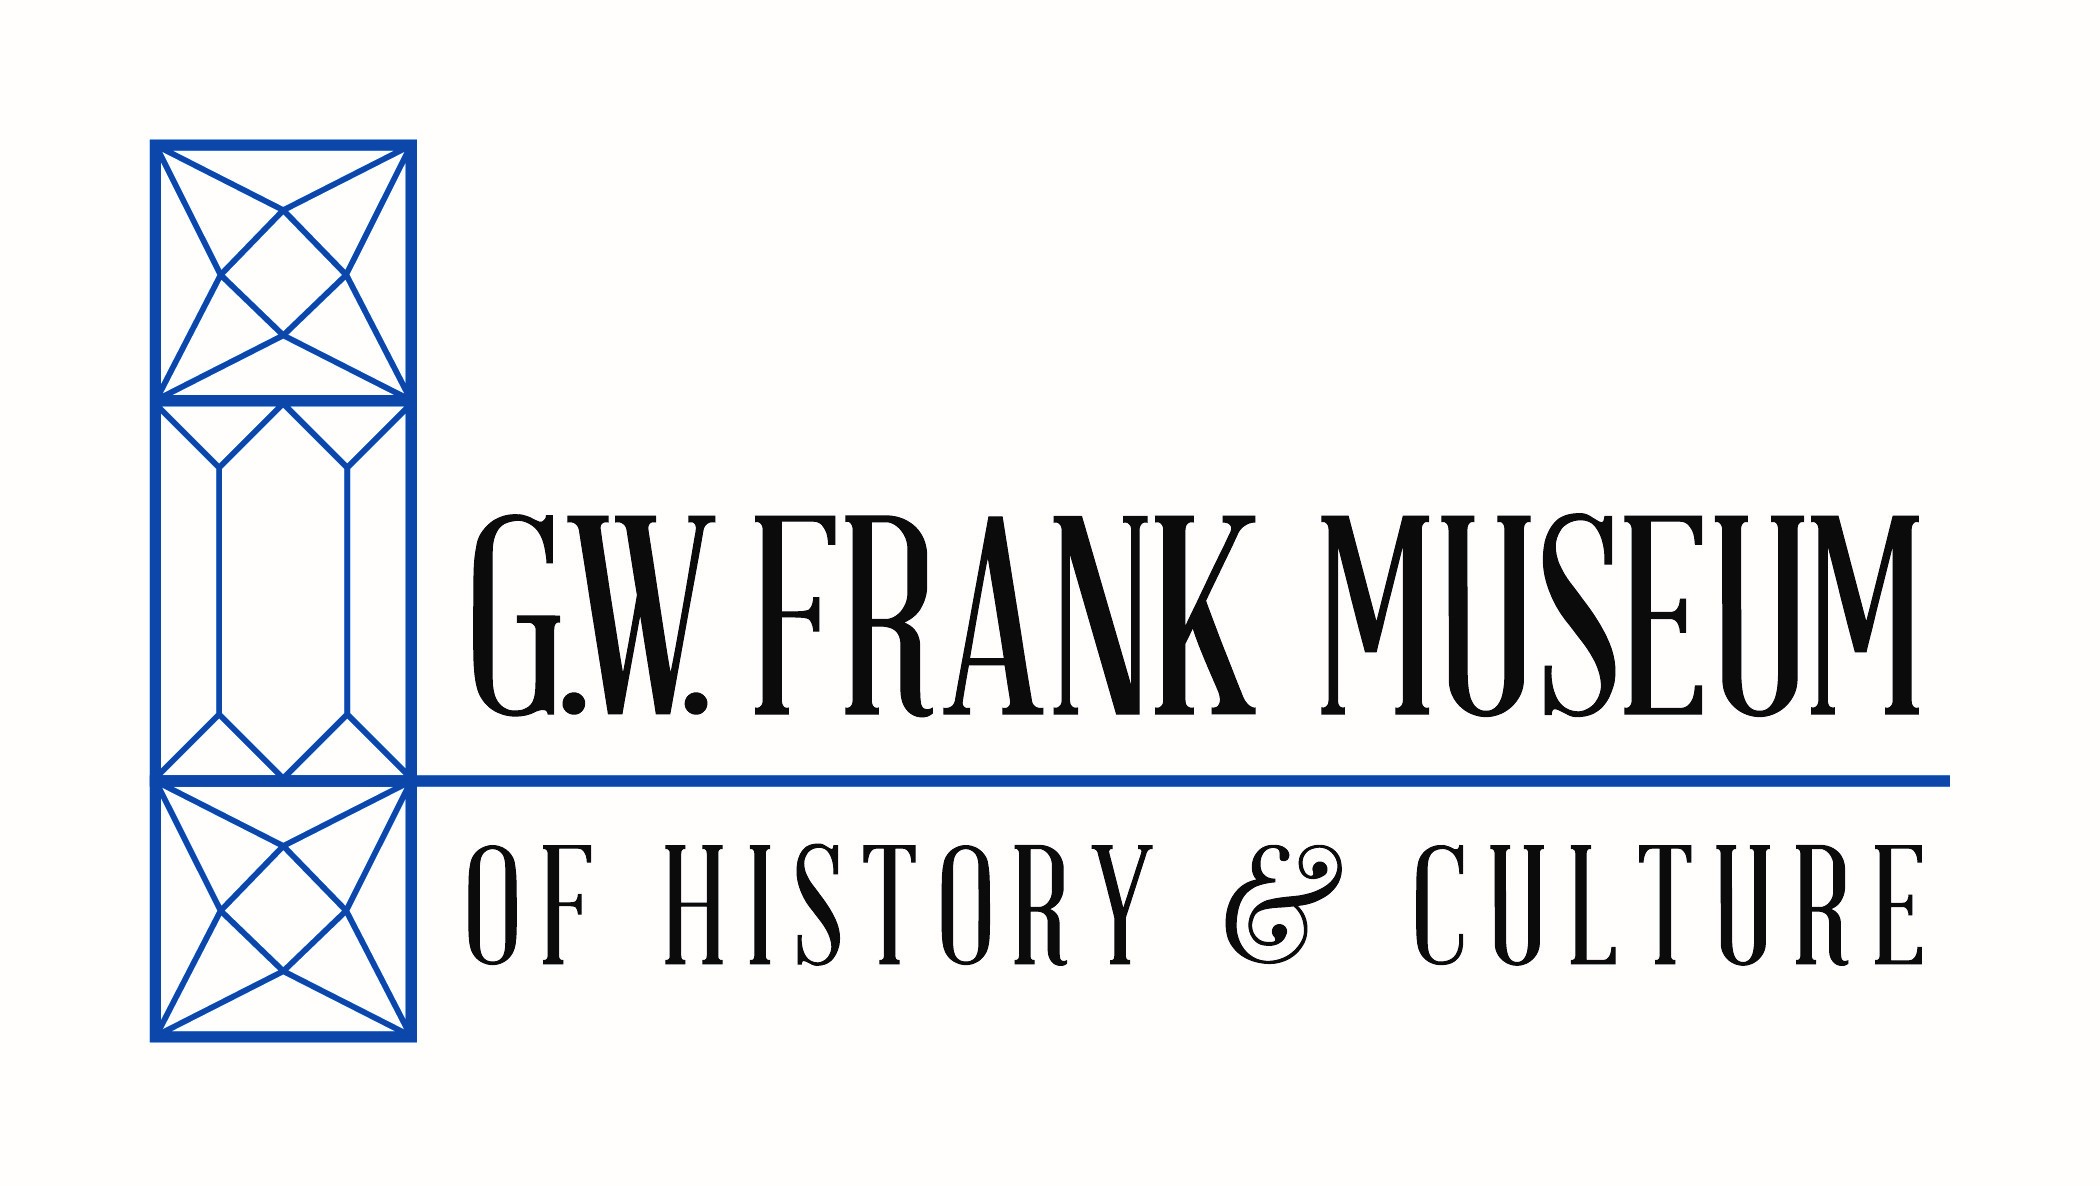 G.W. Frank Museum of History and Culture